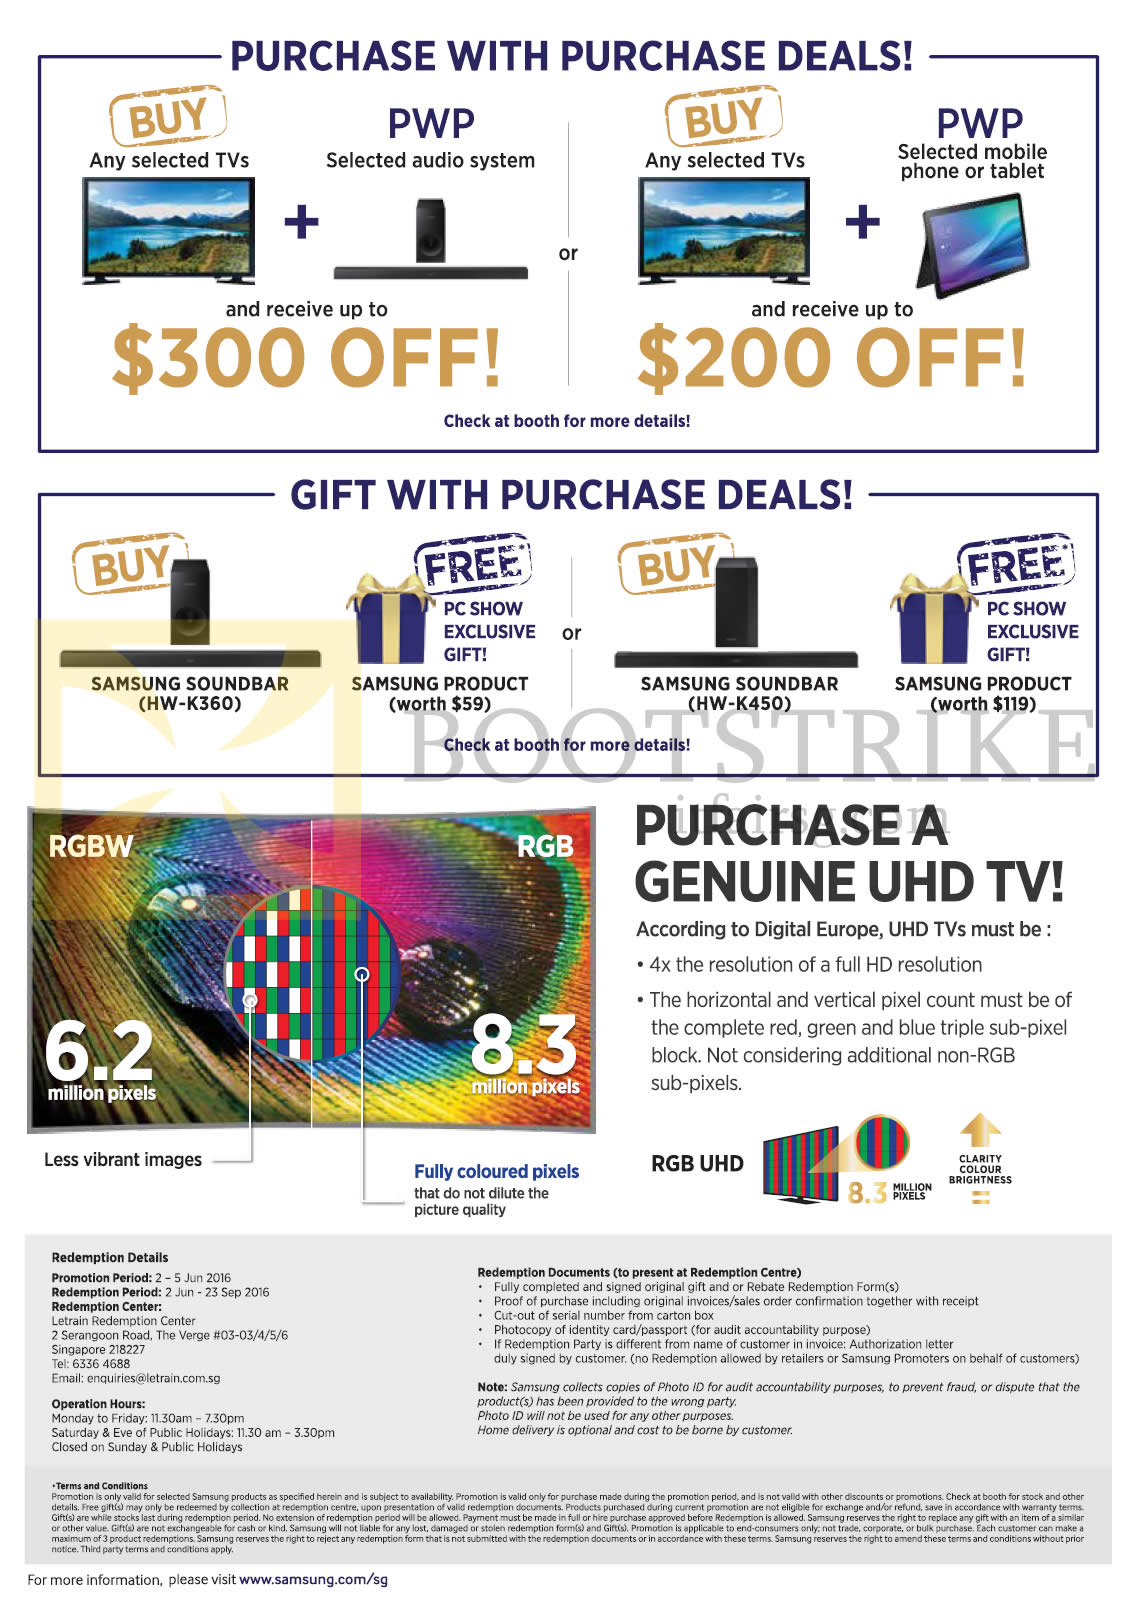 PC SHOW 2016 price list image brochure of Samsung TVs (No Prices) Purchase With Purchase Deals, Gift With Purchase Deals